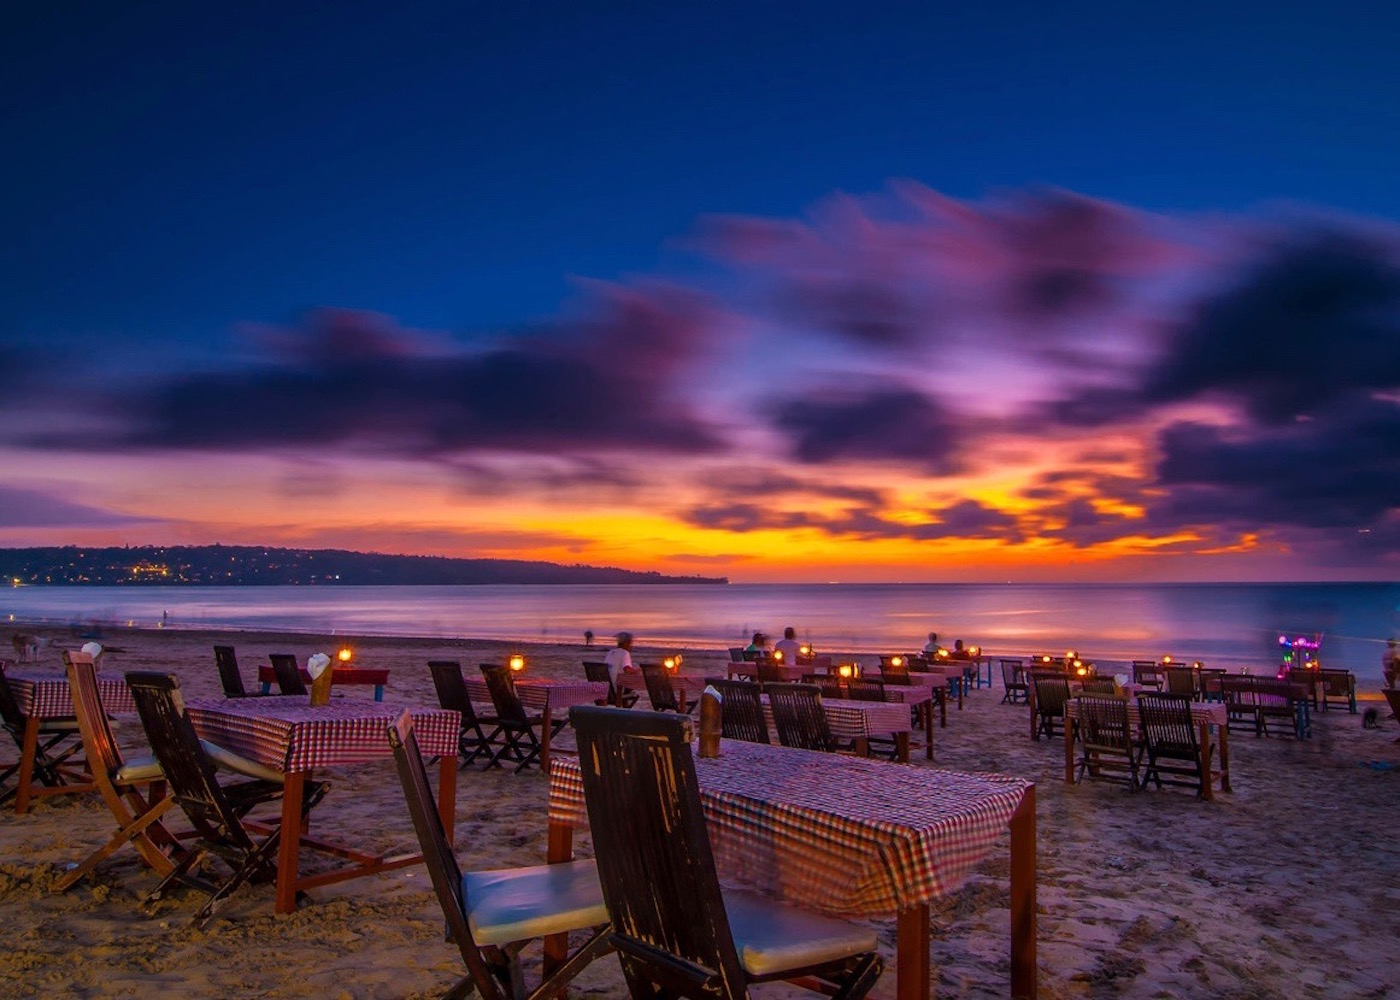 Seafood sunset BBQ at Jimbaran Bay - one of Bali's best beaches